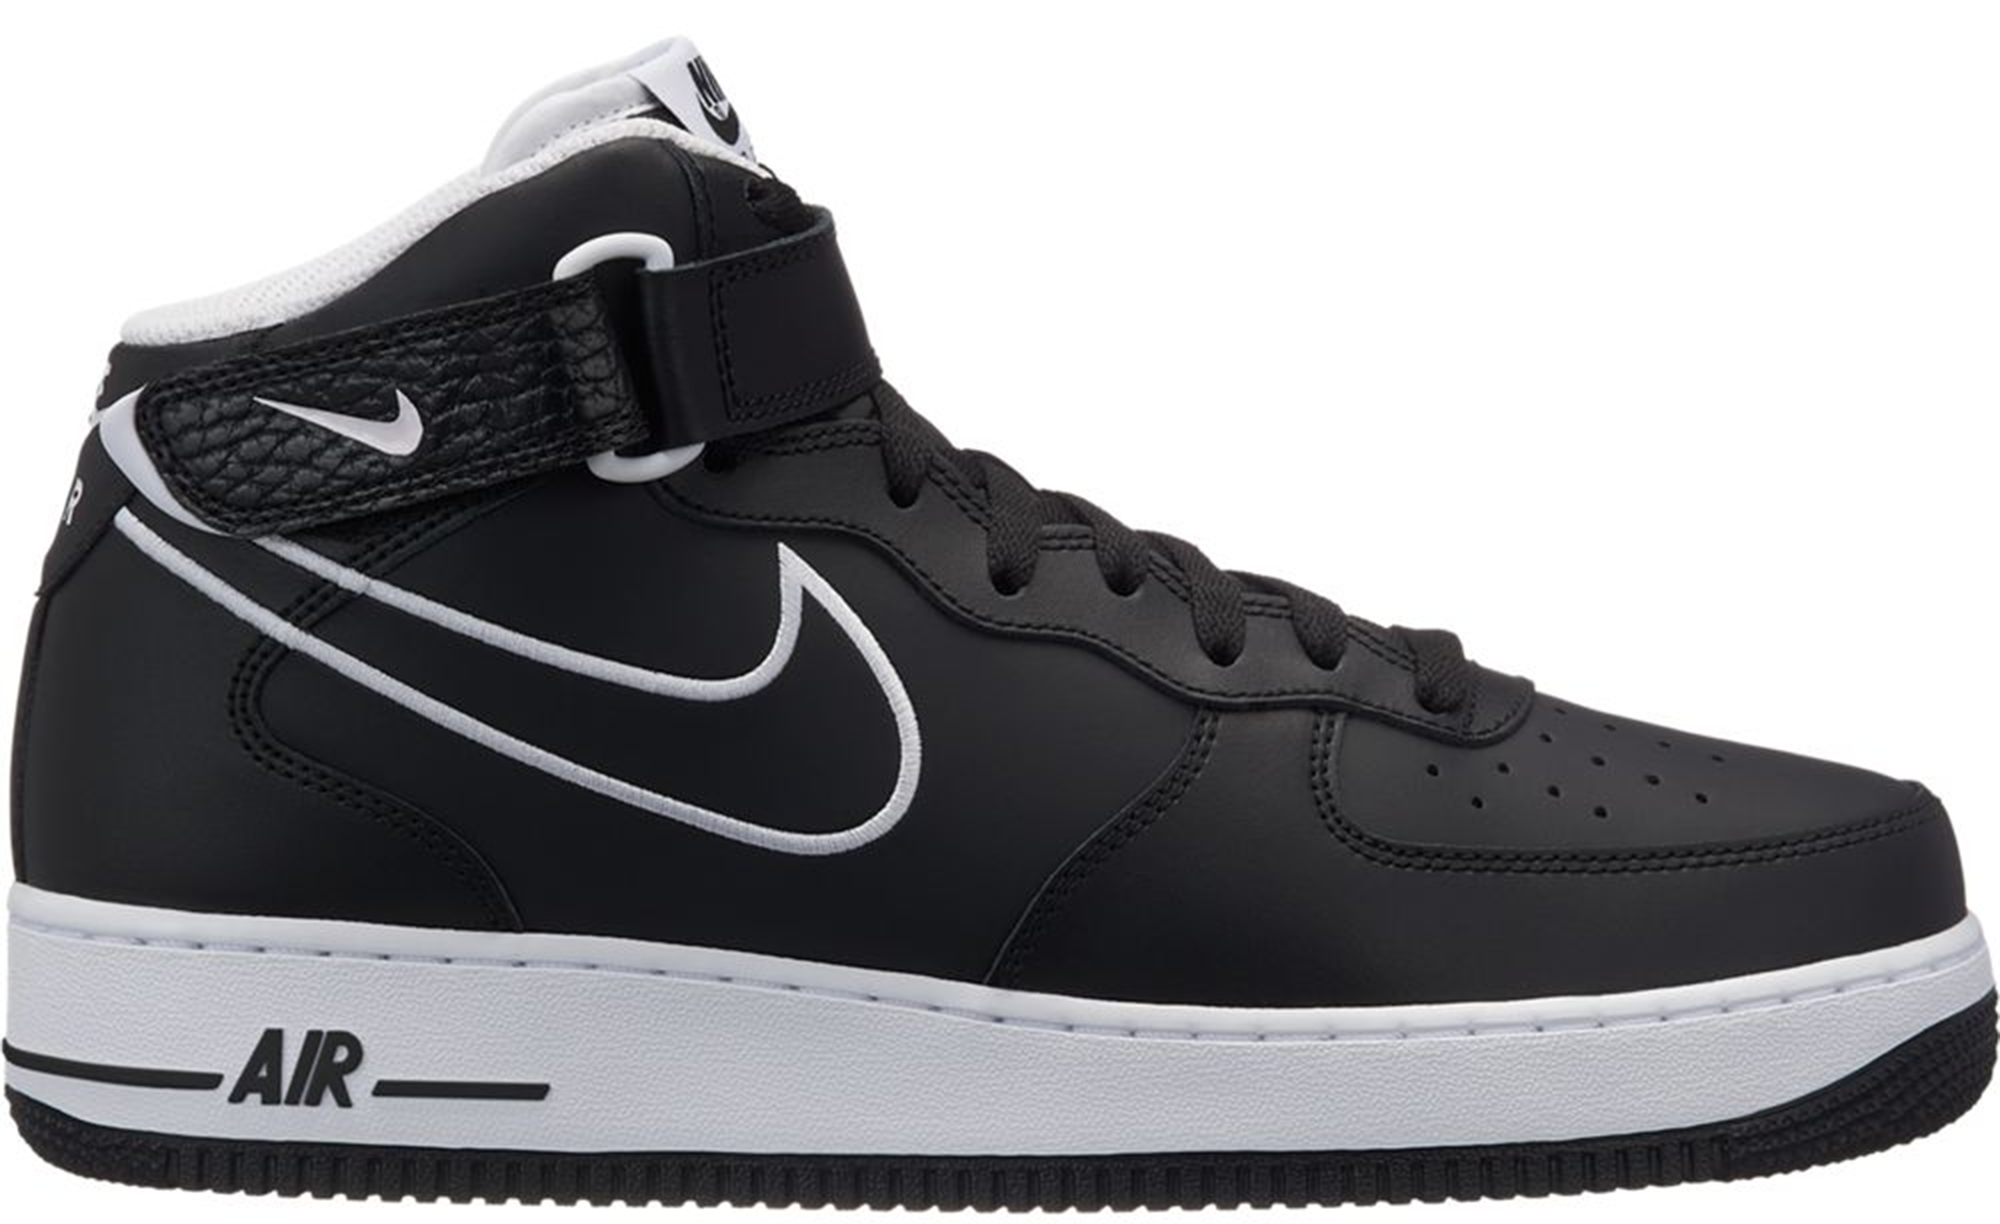 Nike Air Force 1 Mid Leather Black